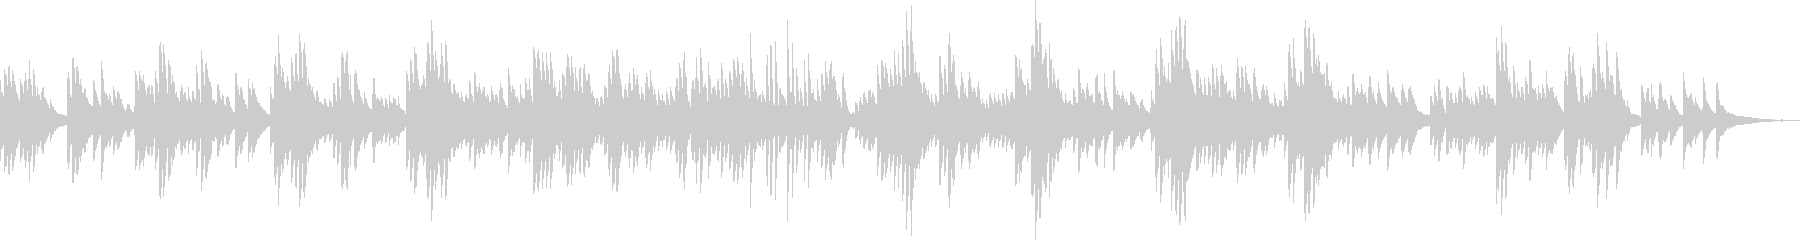 Painful piano ballad (moist and sad)'s unreproduced waveform